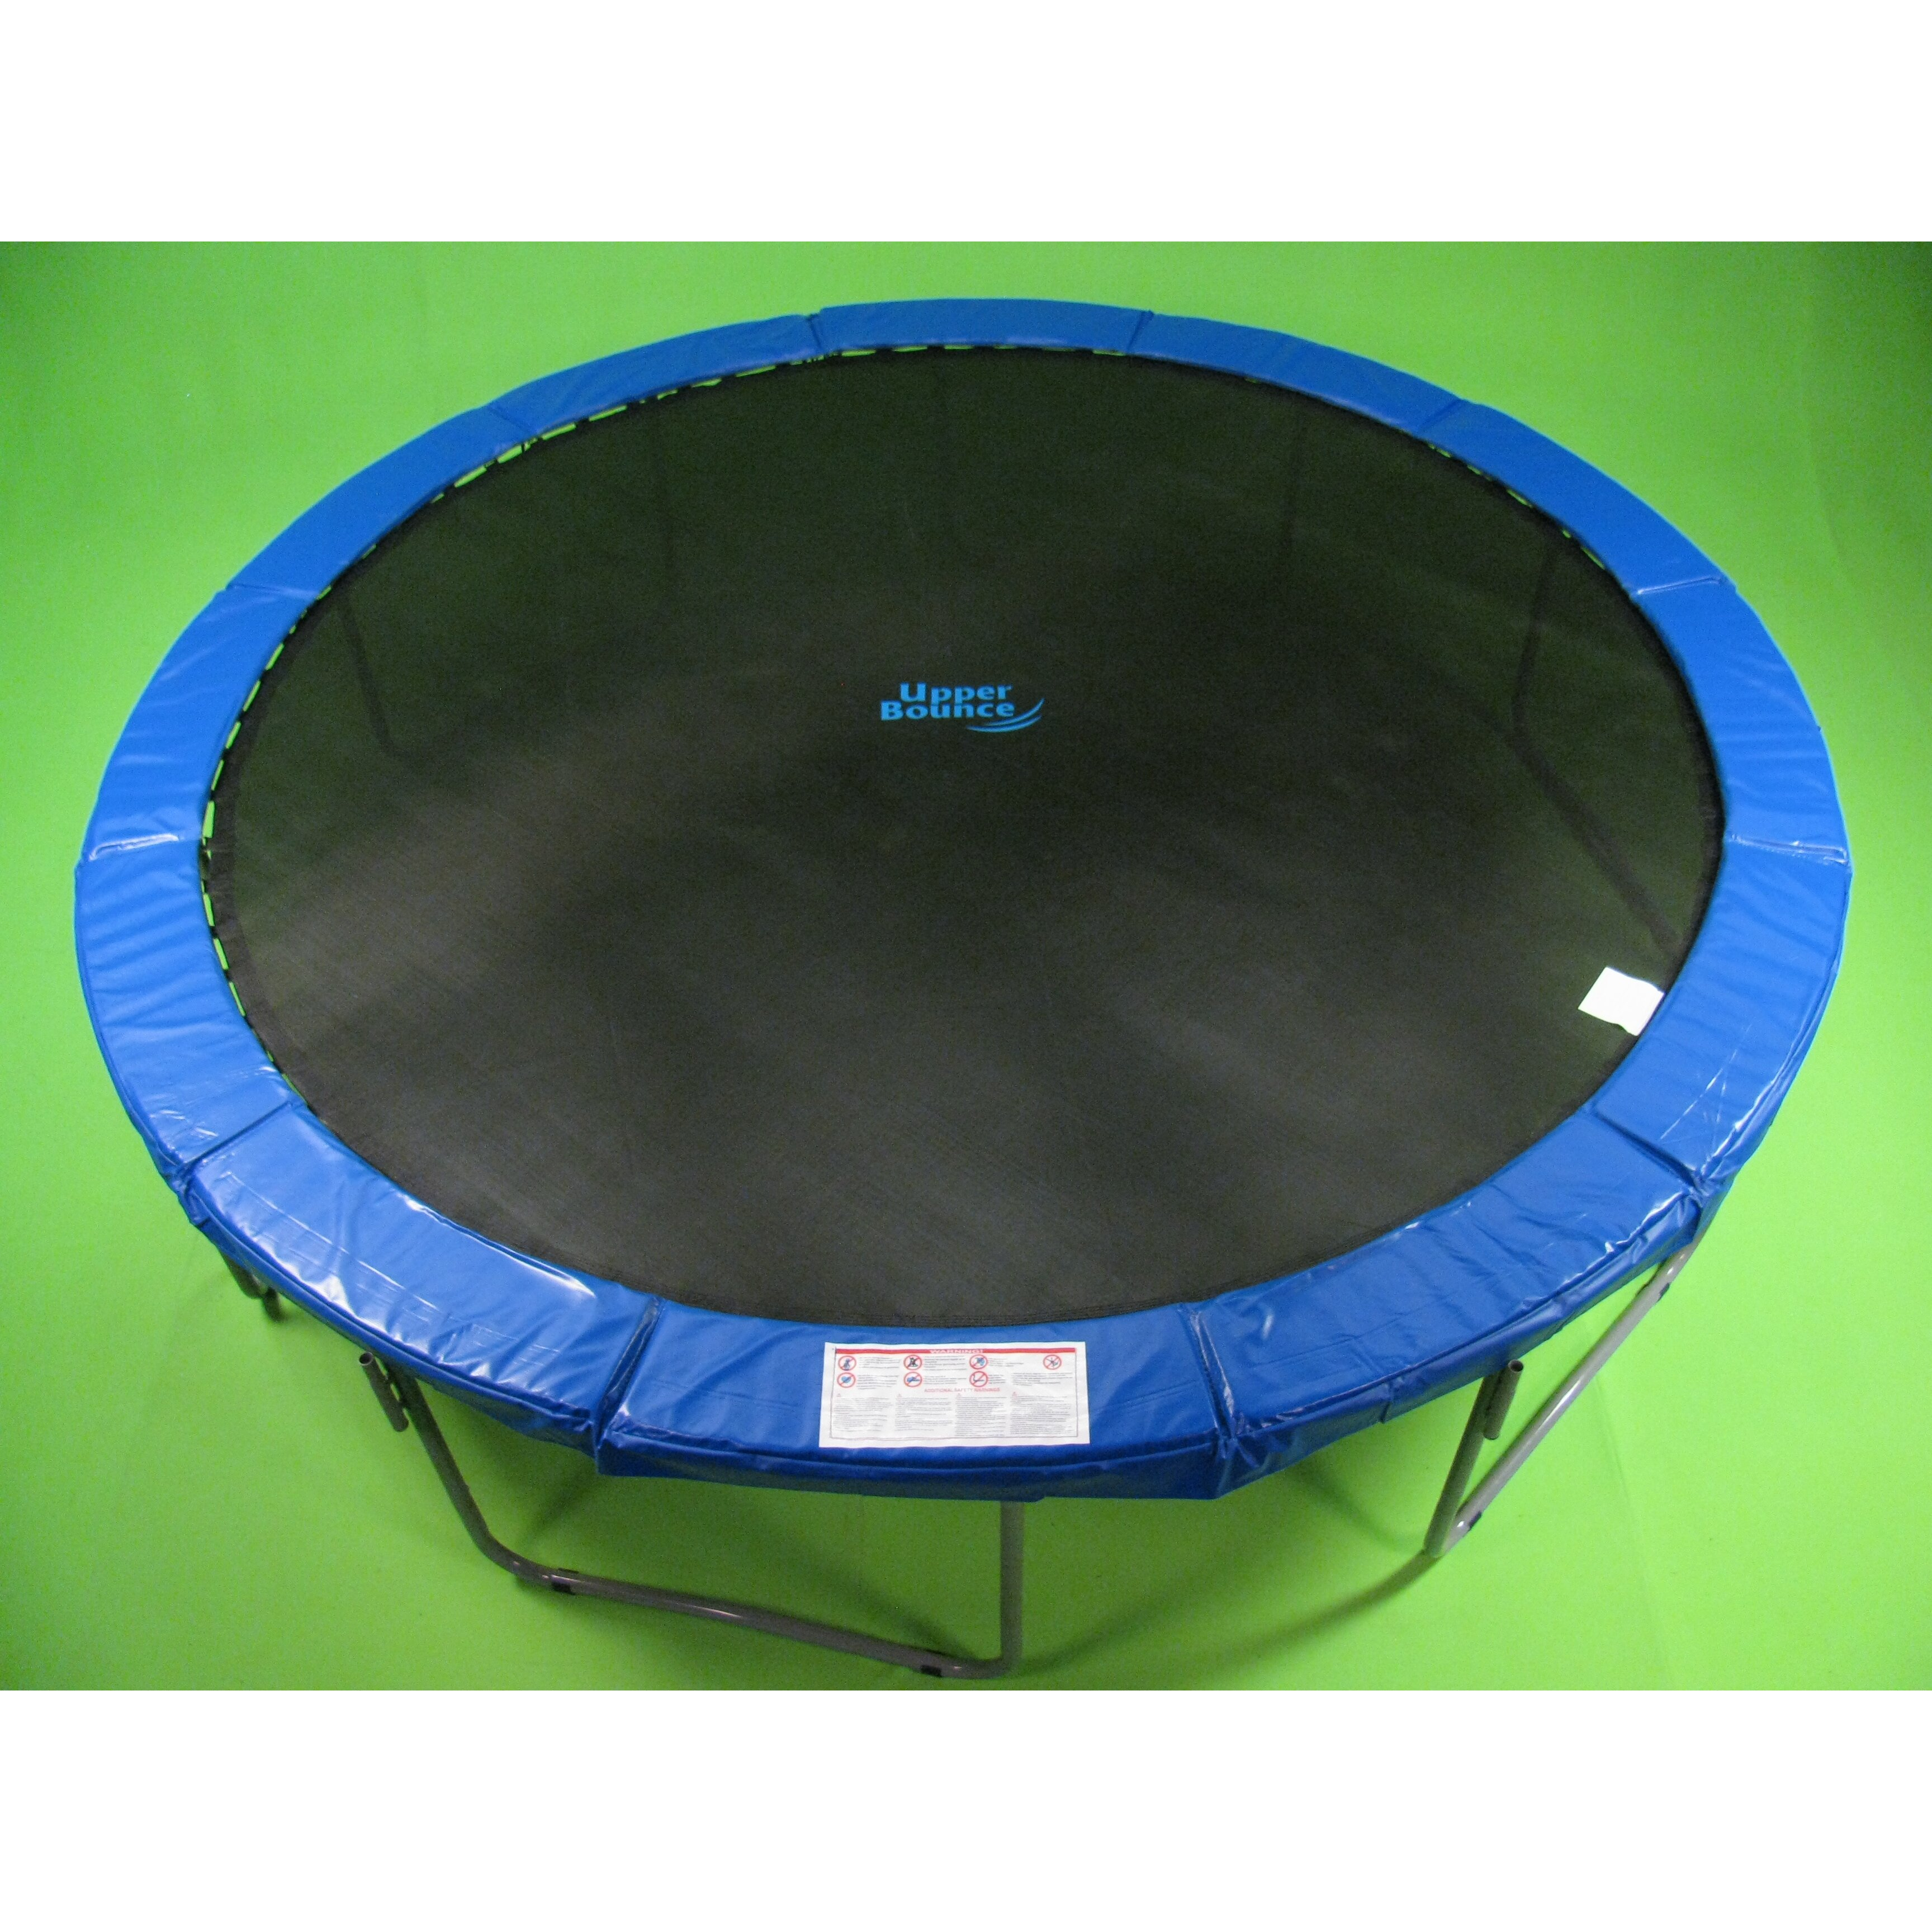 Upper Bounce Super Trampoline Safety Pad Spring Cover: Upper Bounce Pad For 14' Trampoline & Reviews